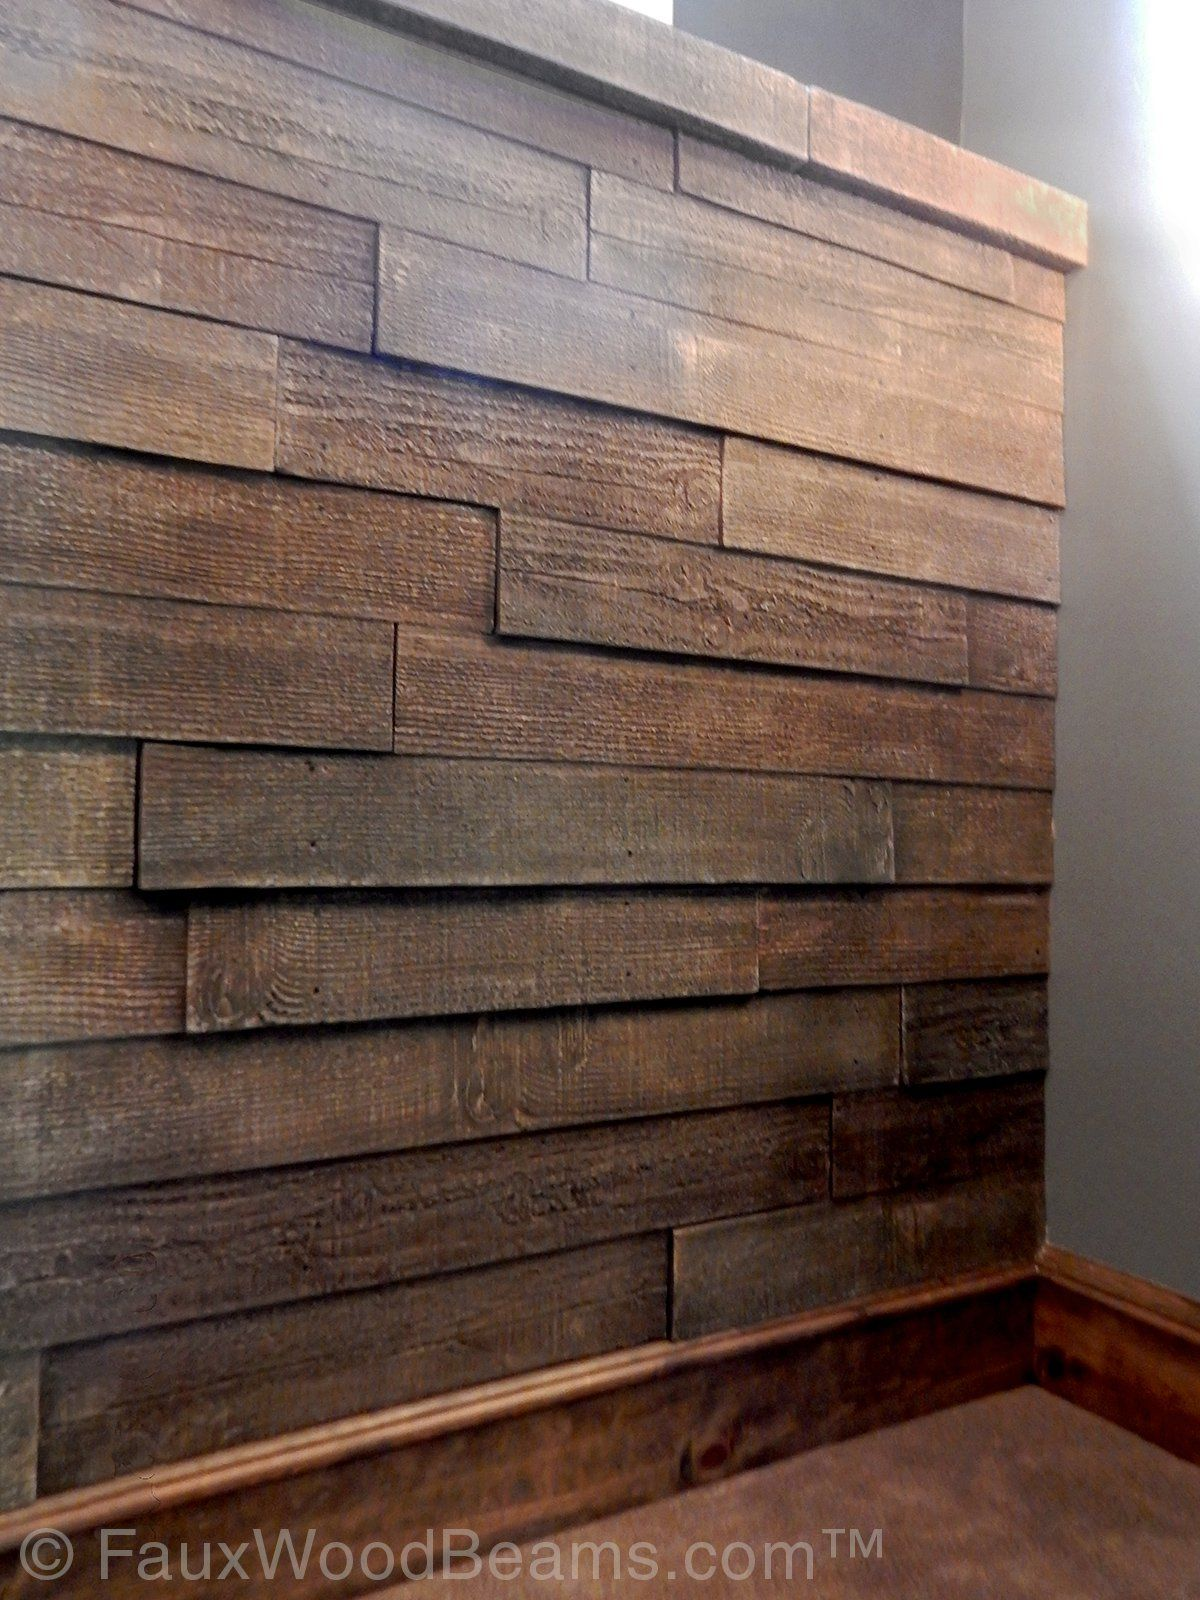 Affordable Wood Paneling Perfect For Wainscoting Or Full